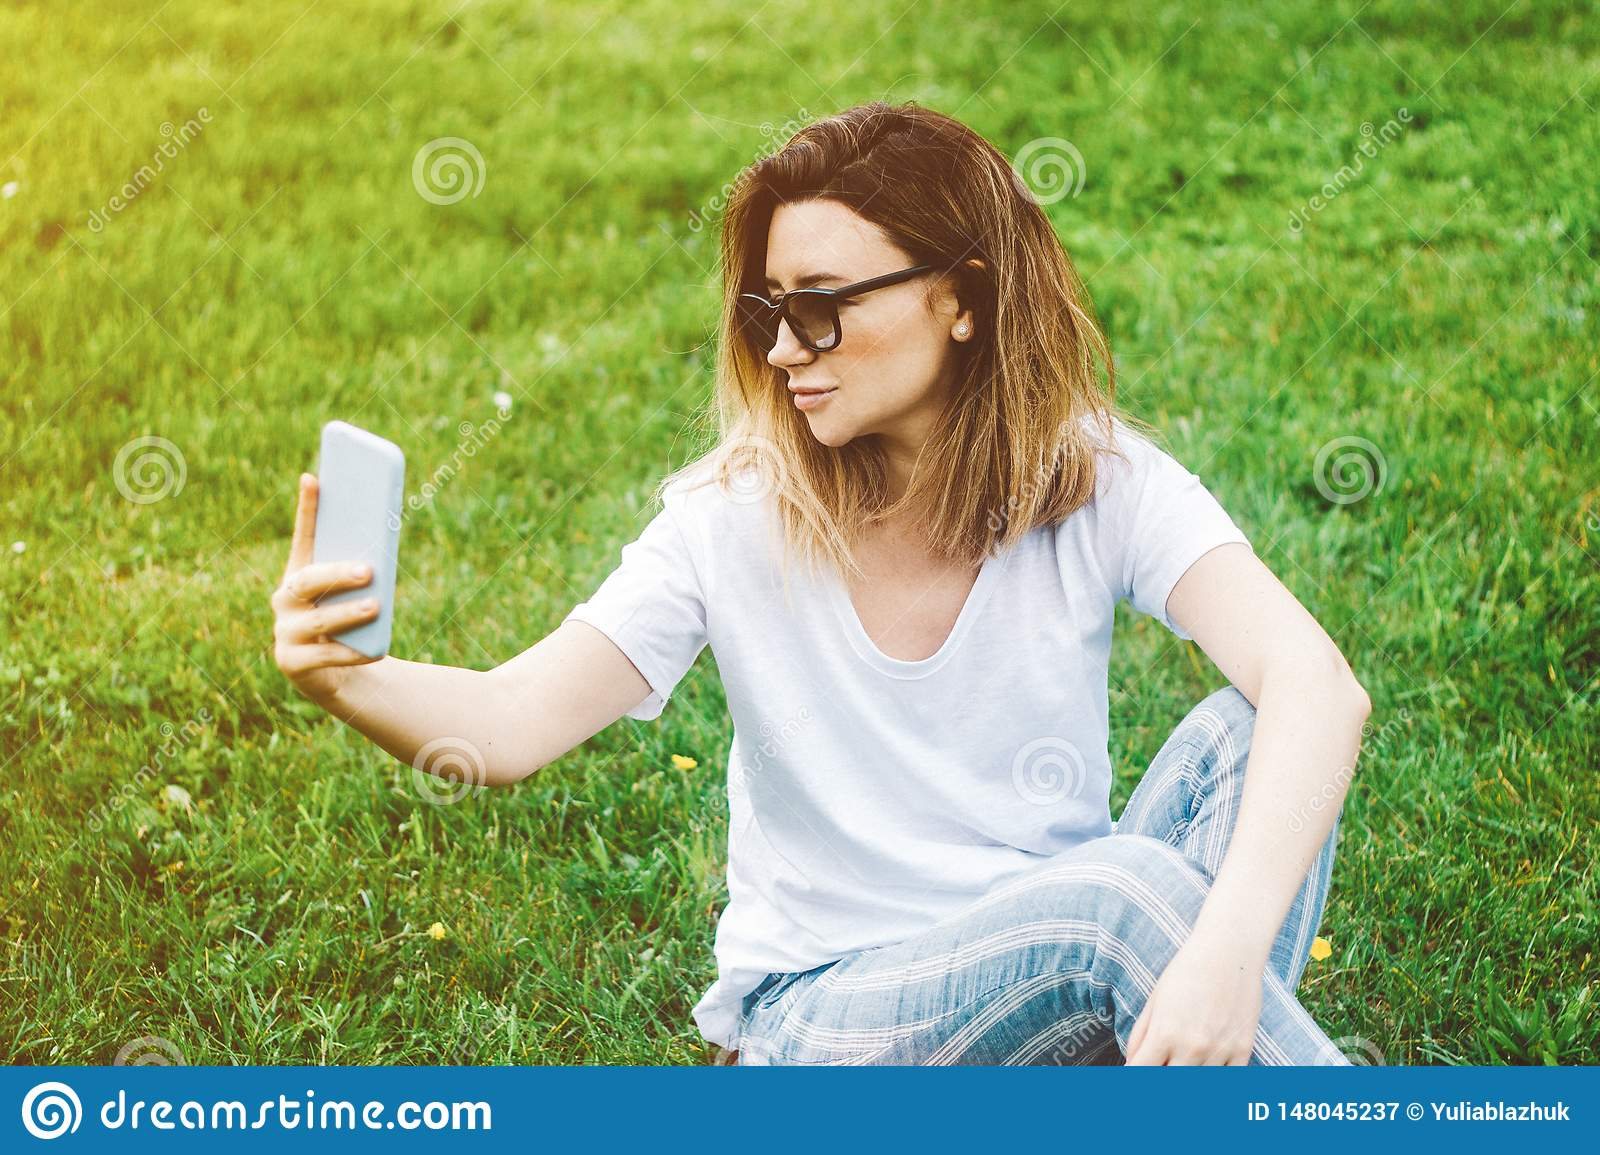 Stylish young woman making selfie in the park with a smartphone